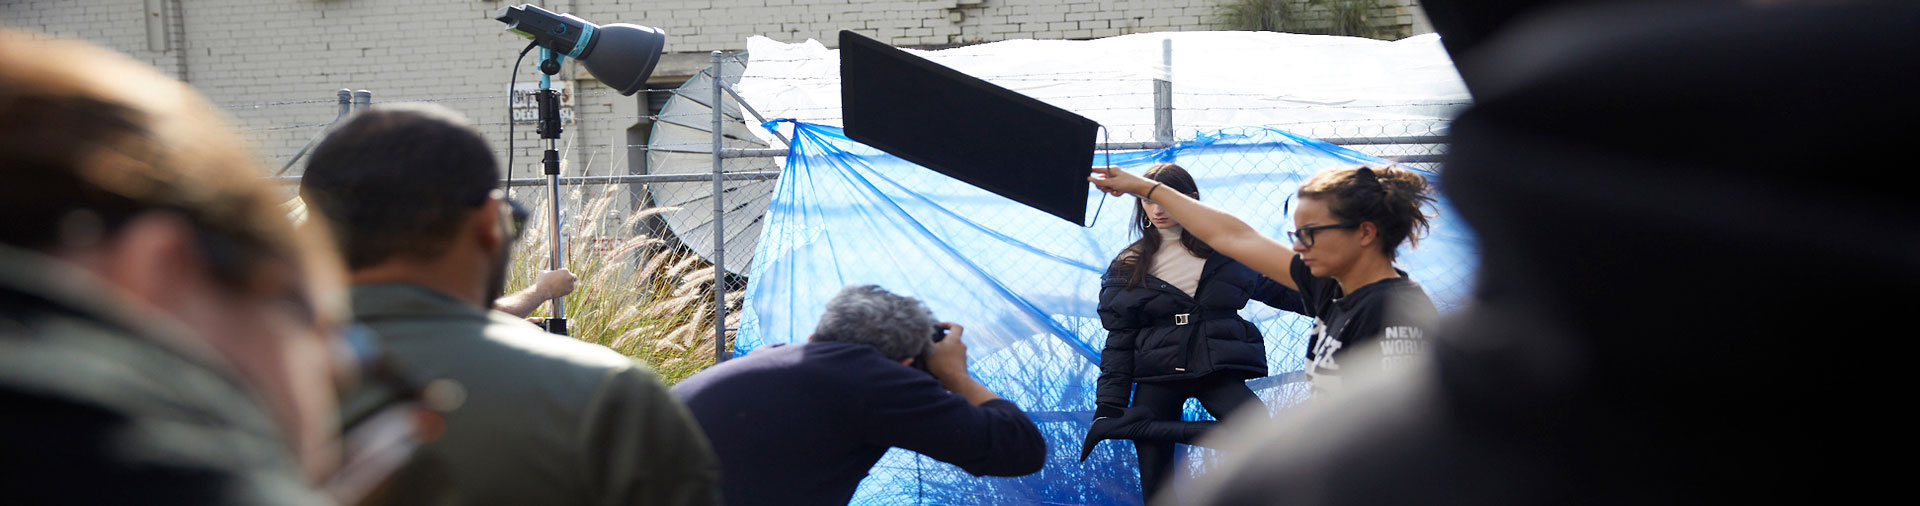 Behind the scenes of Let There Be Light outdoor workshop with Sydney photographer Georges Antoni